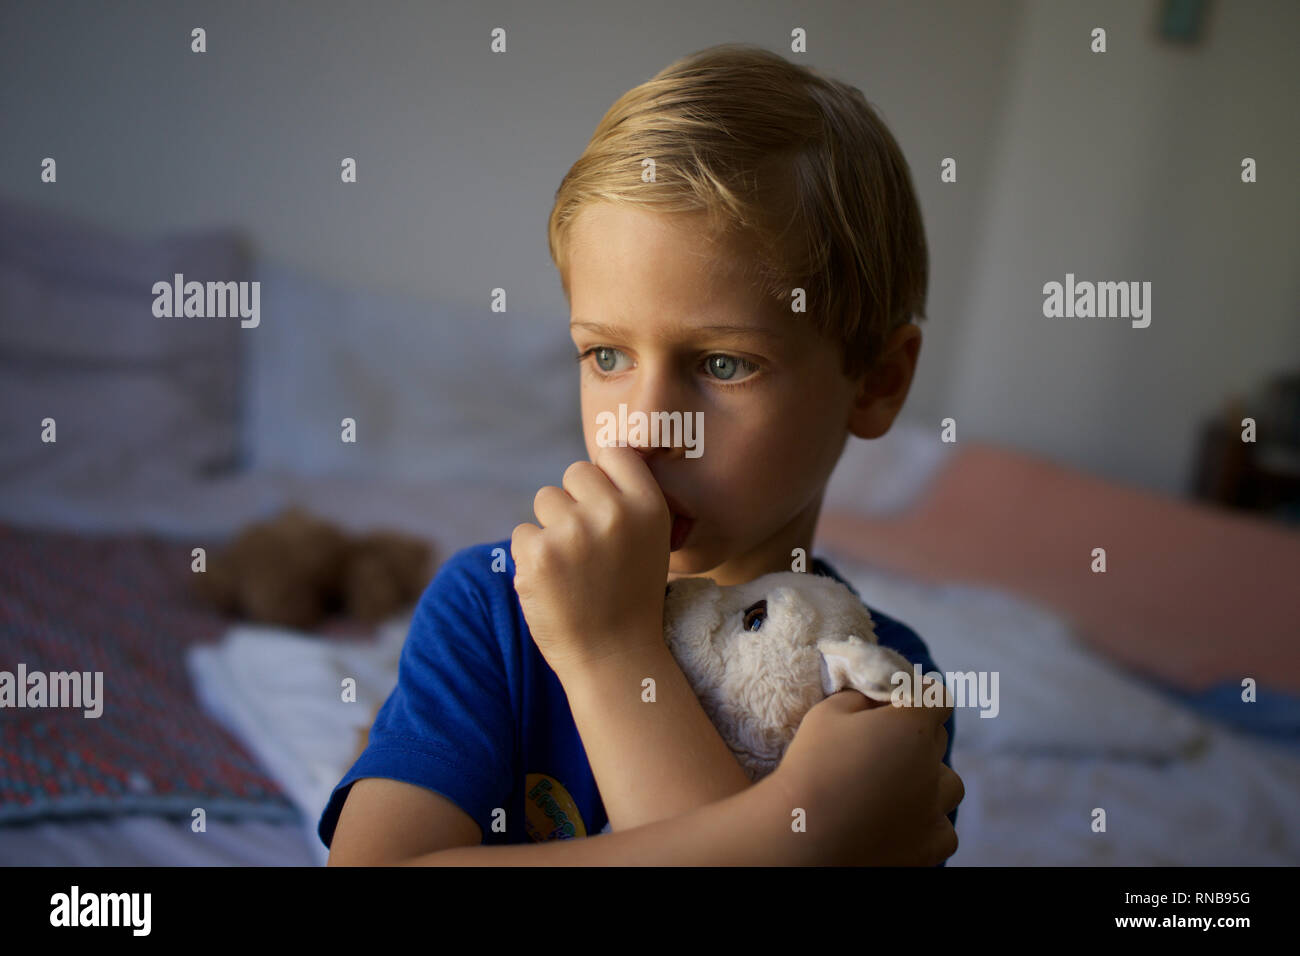 Child, young boy sucking thumb holding soft toy dog, tired, insecure - domestic setting - Stock Image